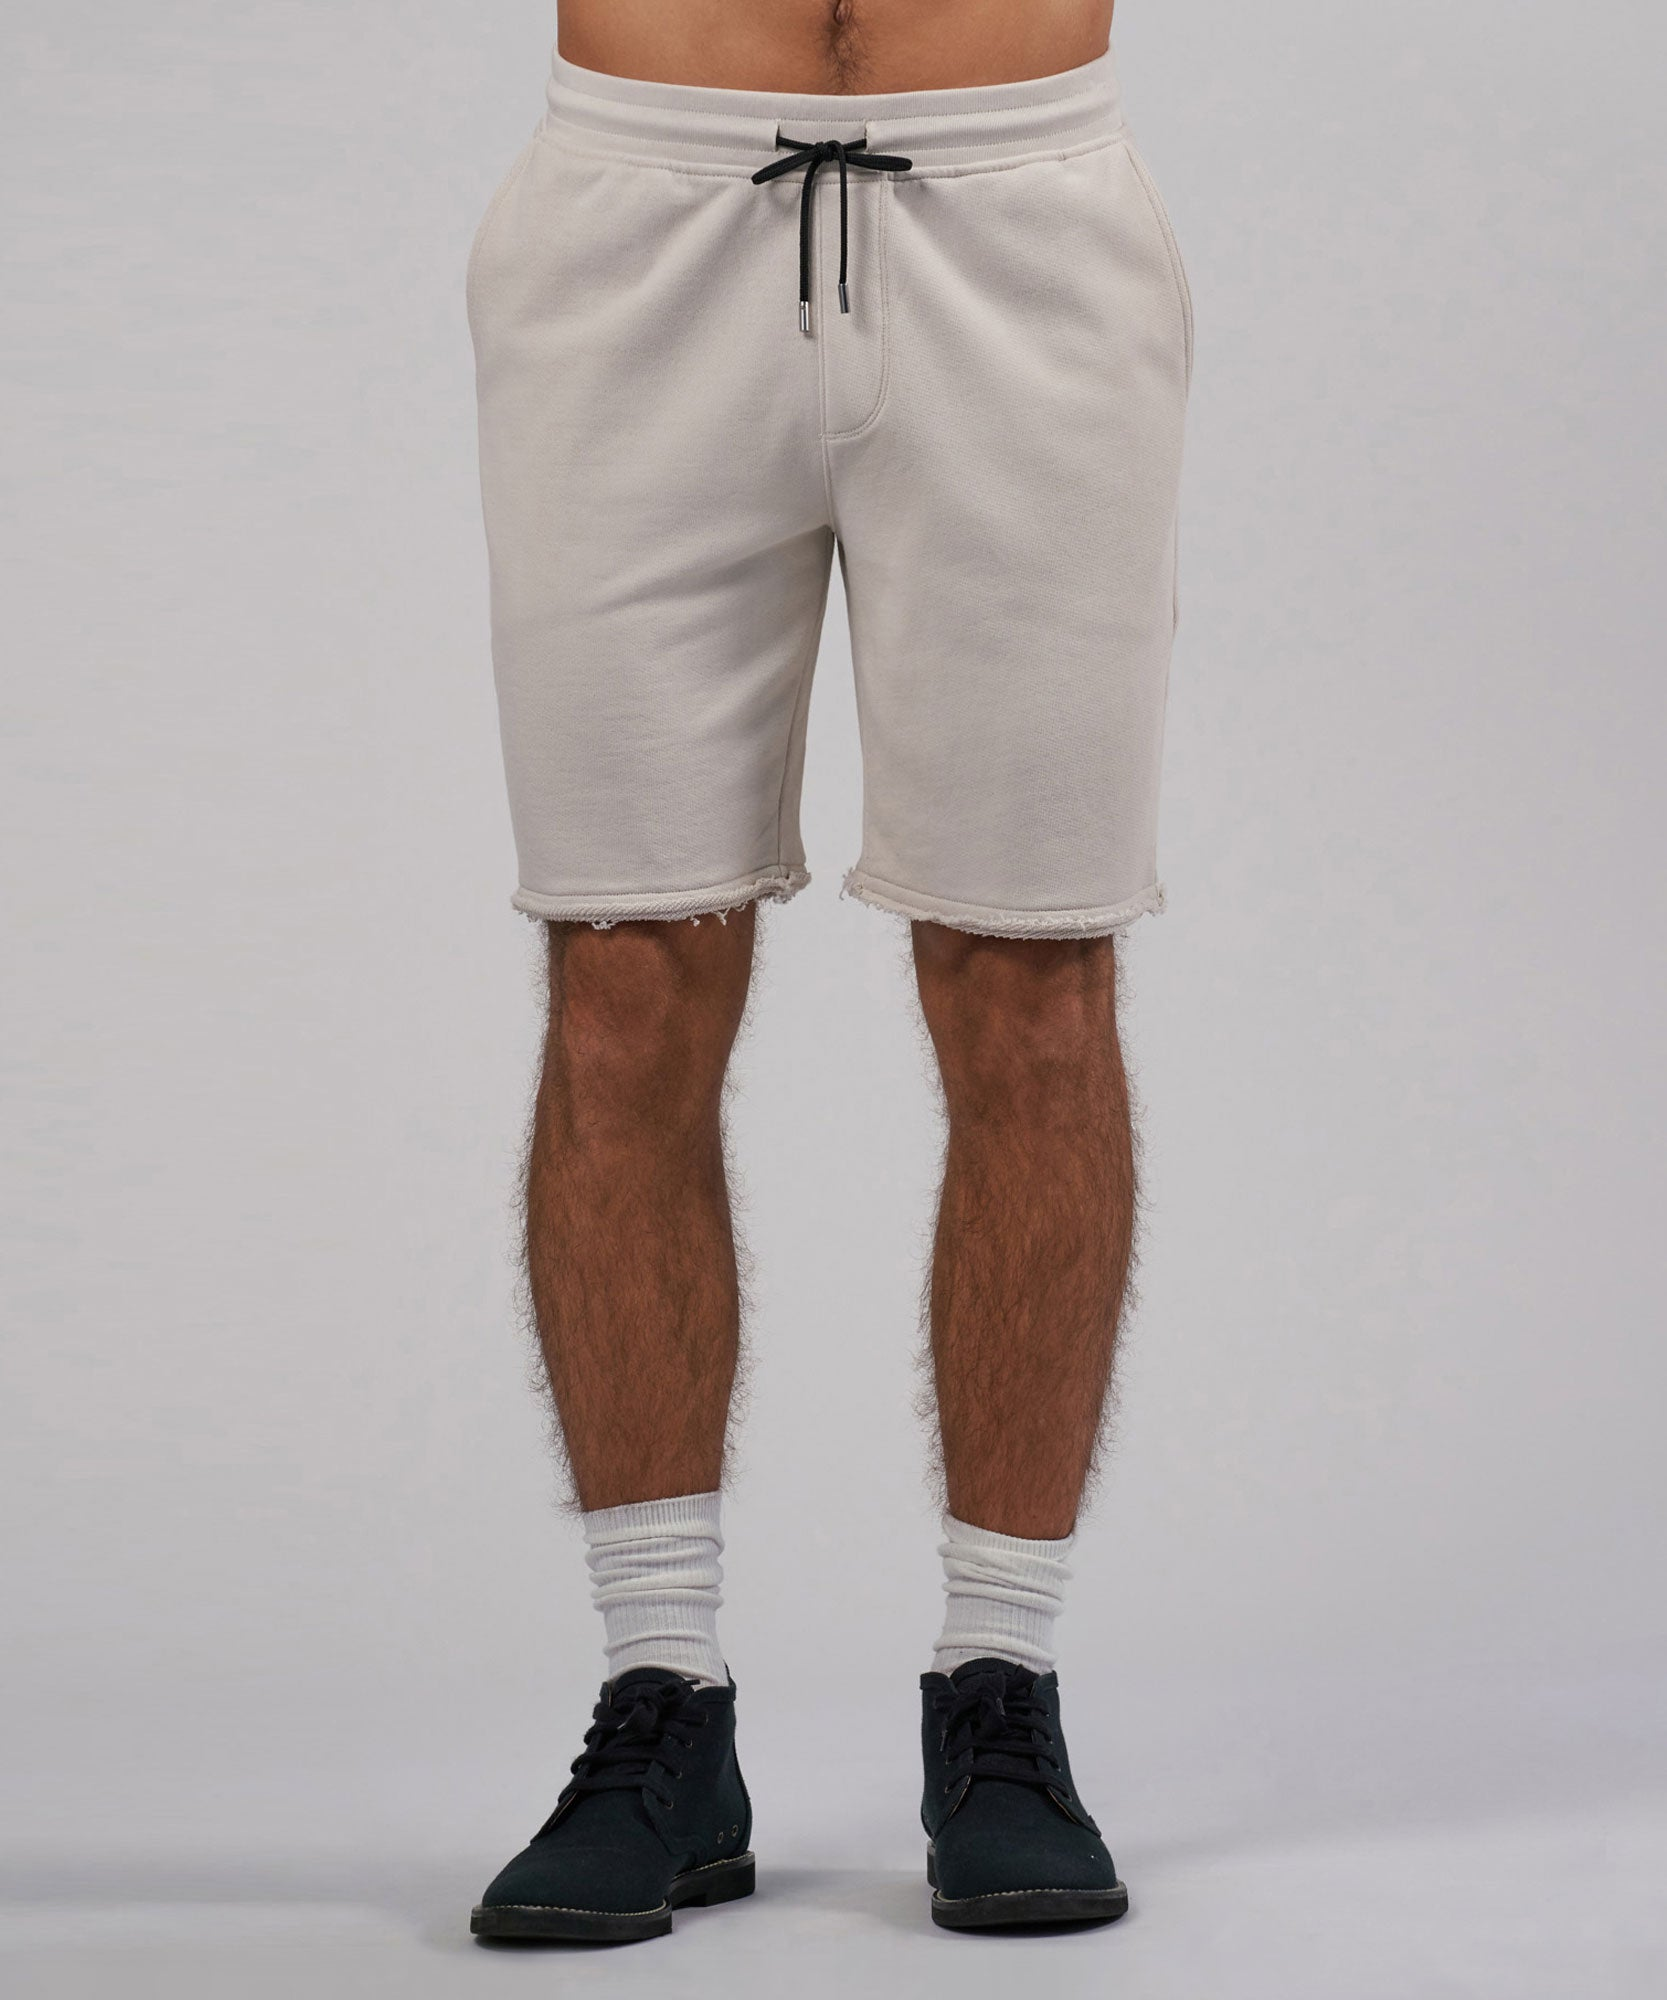 Tan French Terry Pull-On Shorts - Mens Shorts by ATM Anthony THomas Melillo